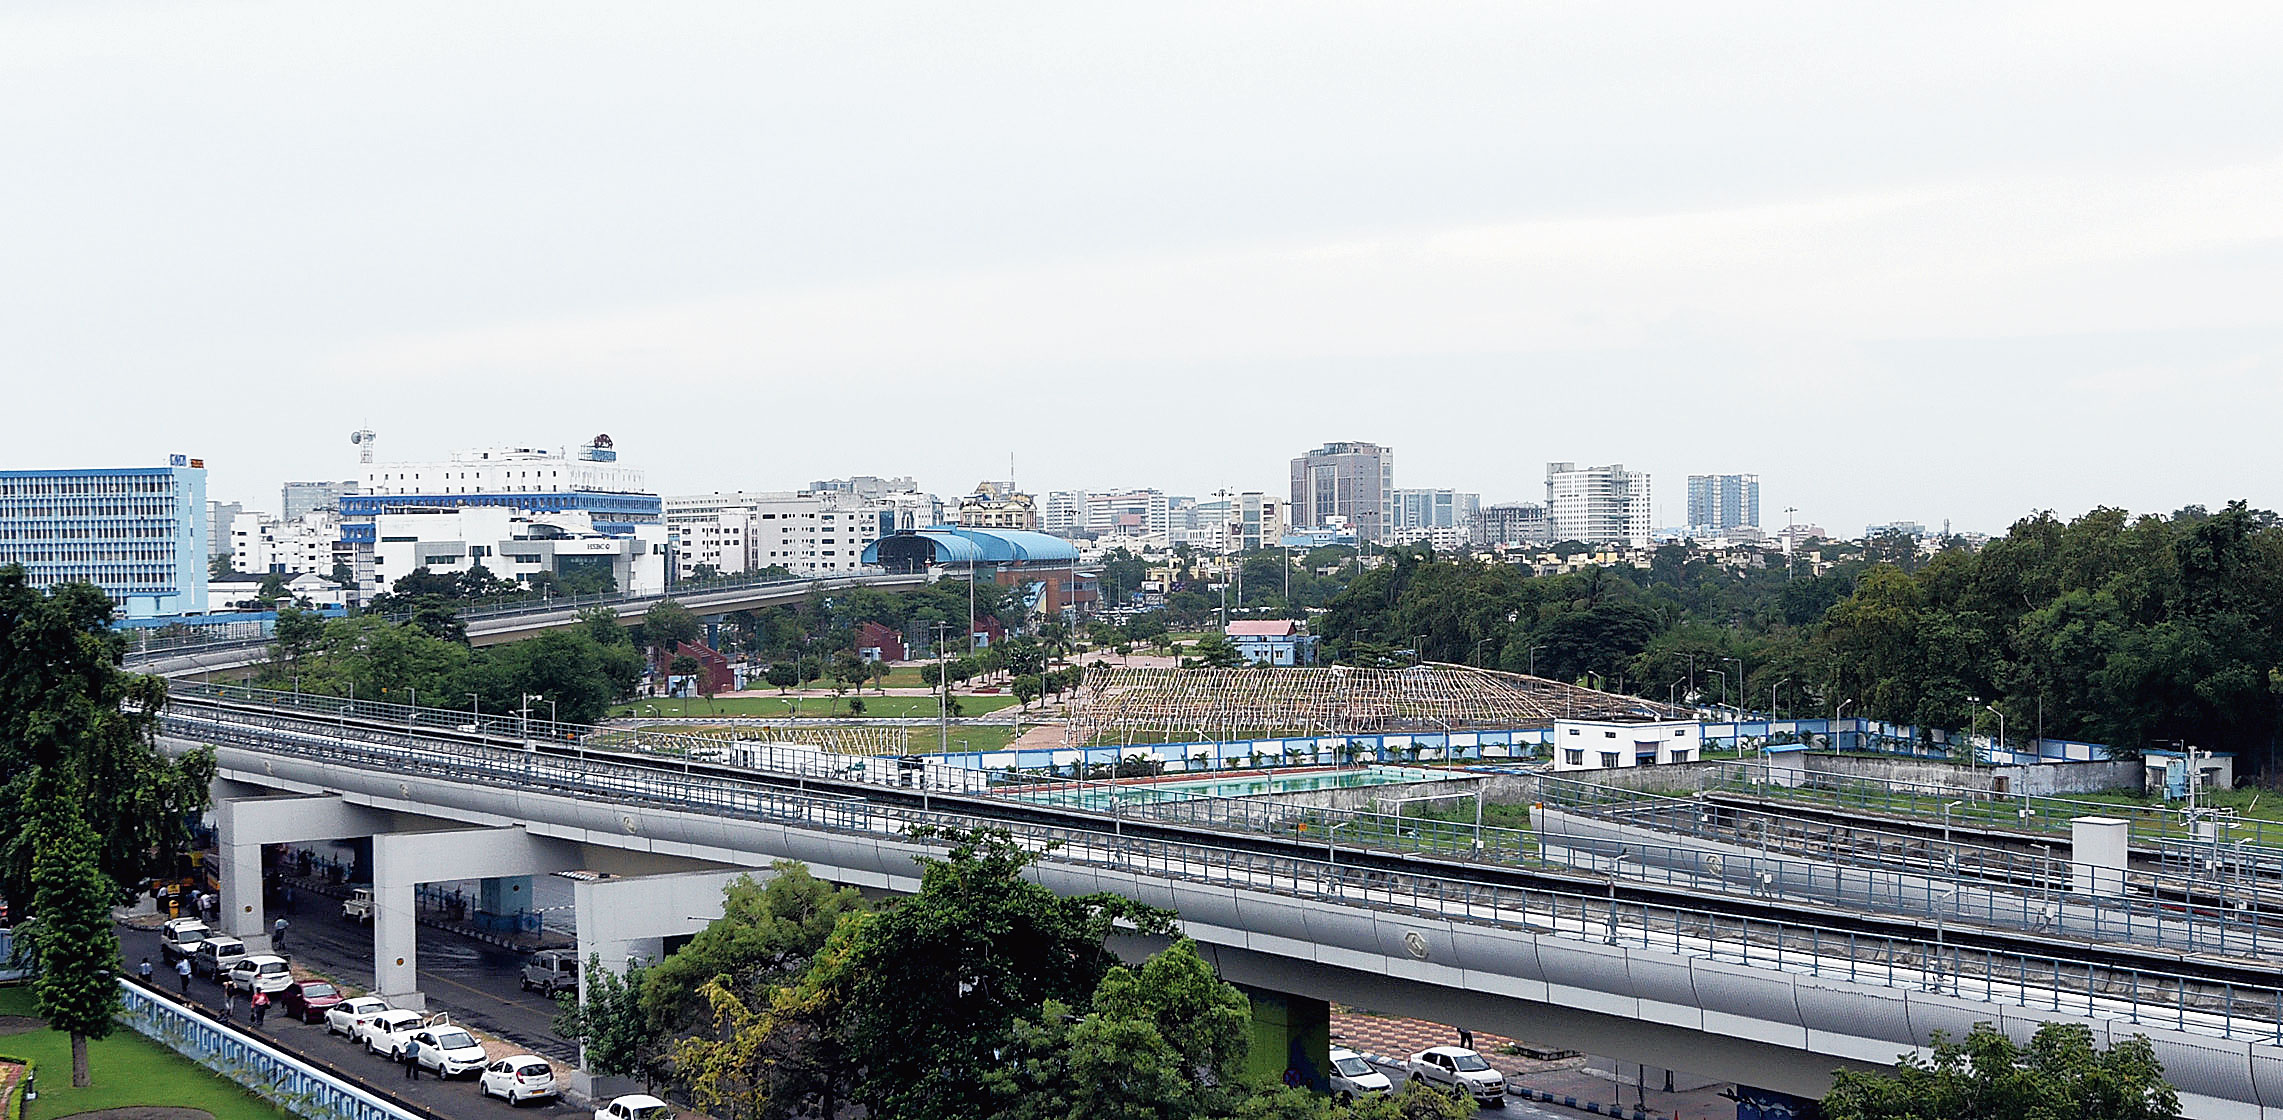 A stretch of the East-West Metri viaduct that was constructed in 2012.